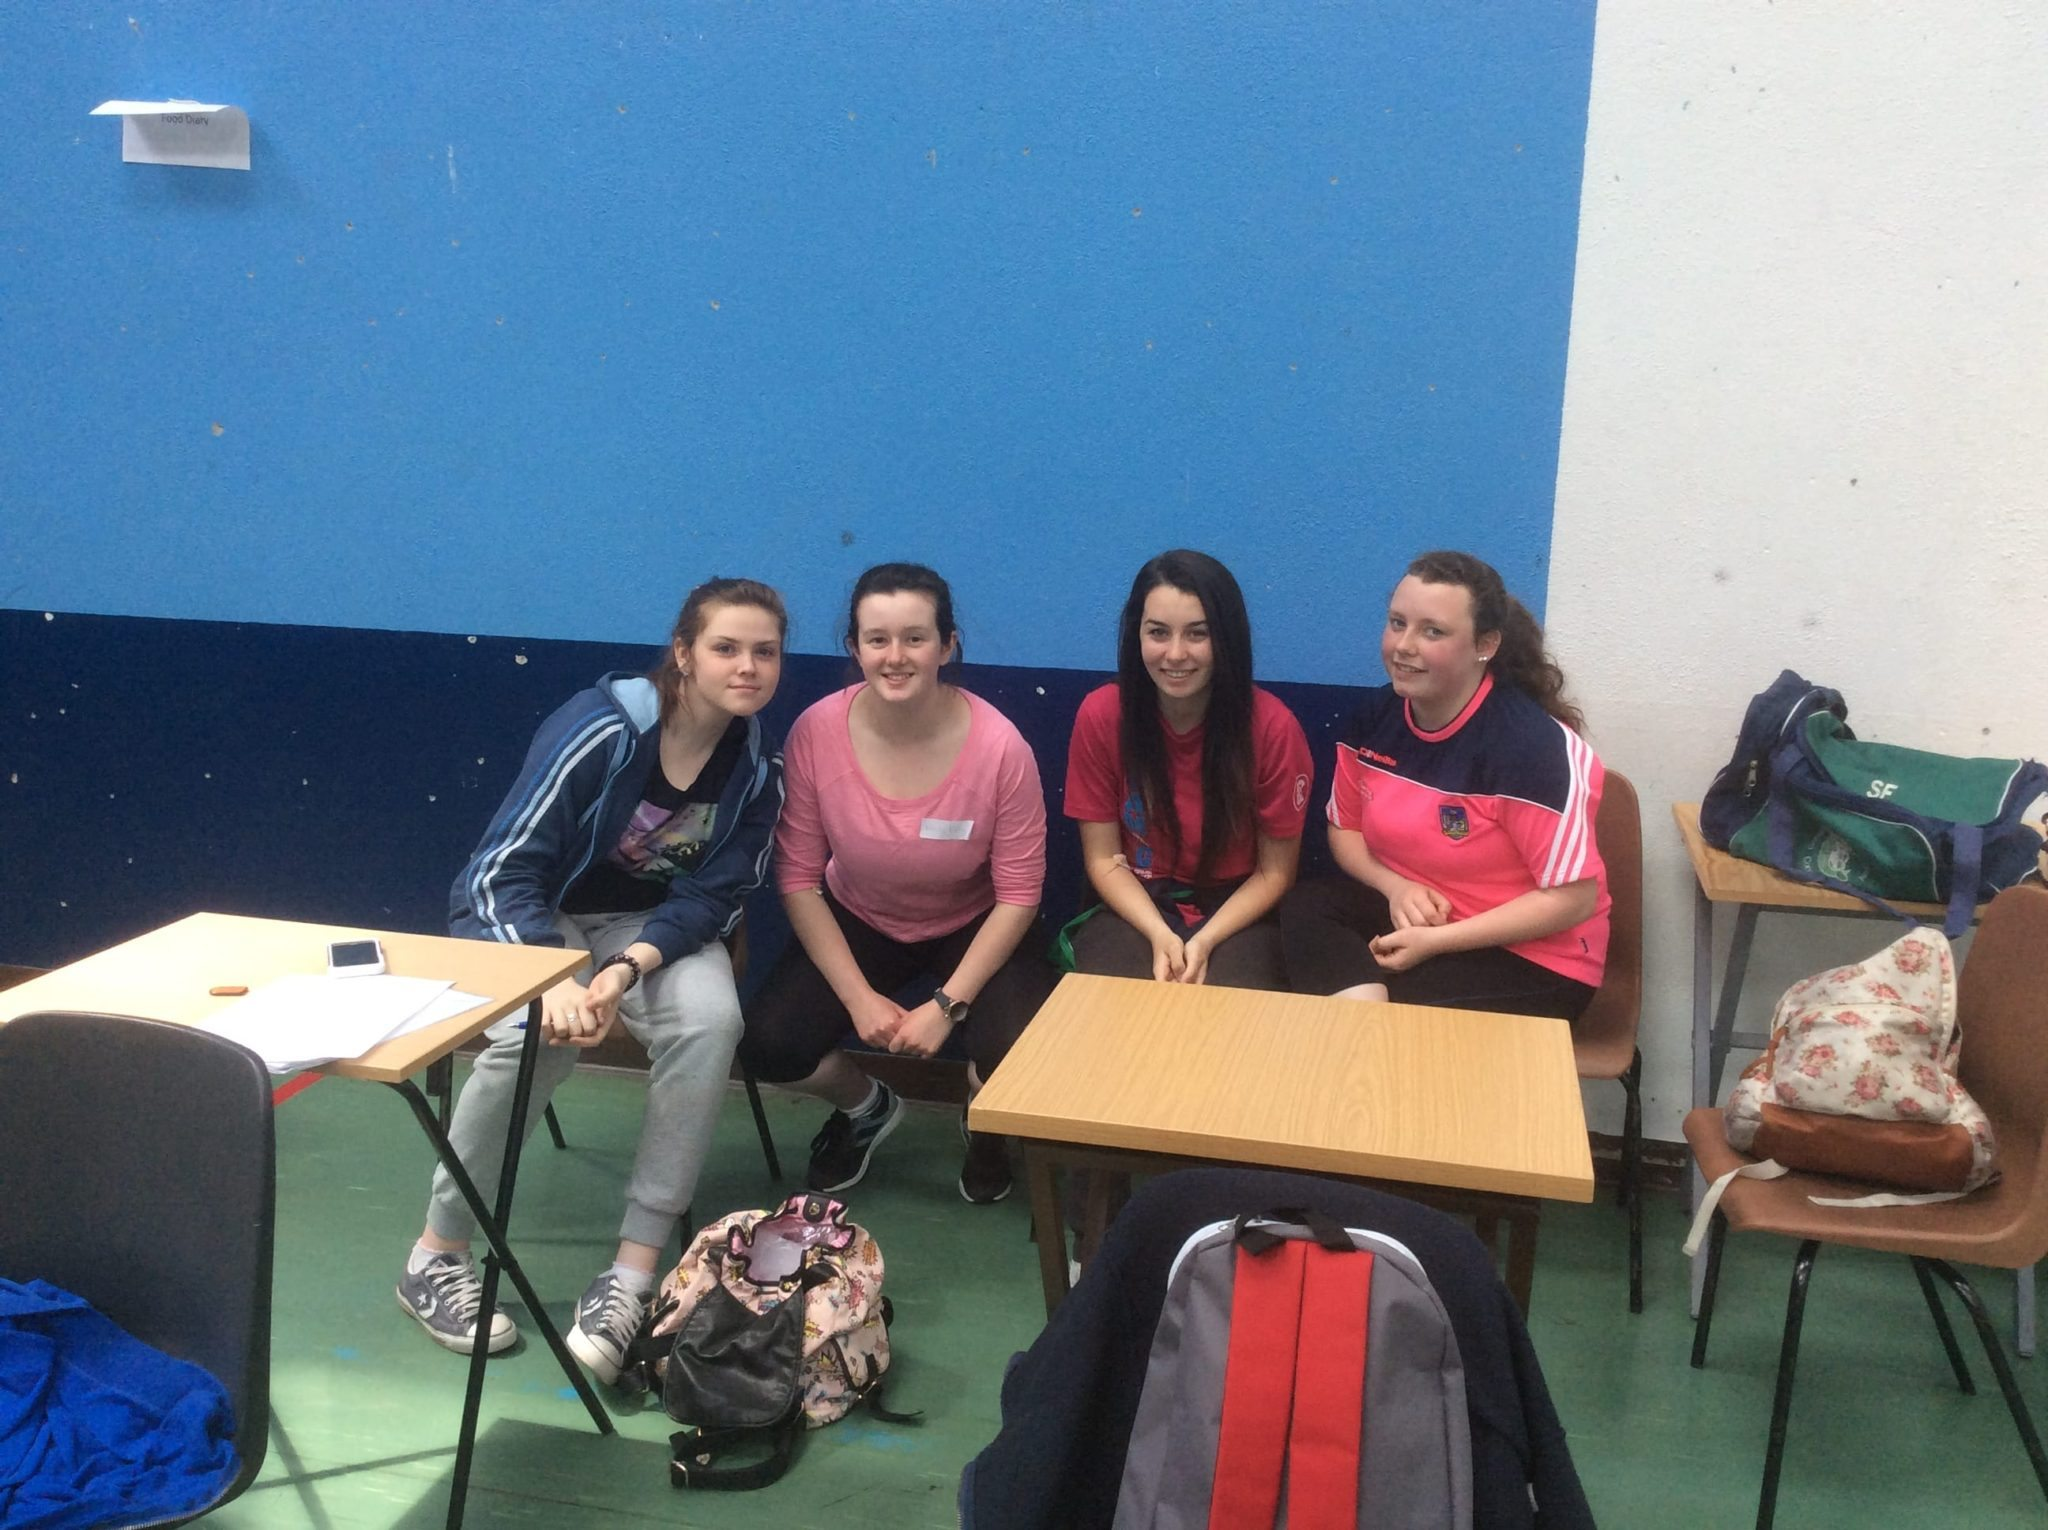 May 2016: Desmond College students involved in the UL health in Adolescence study